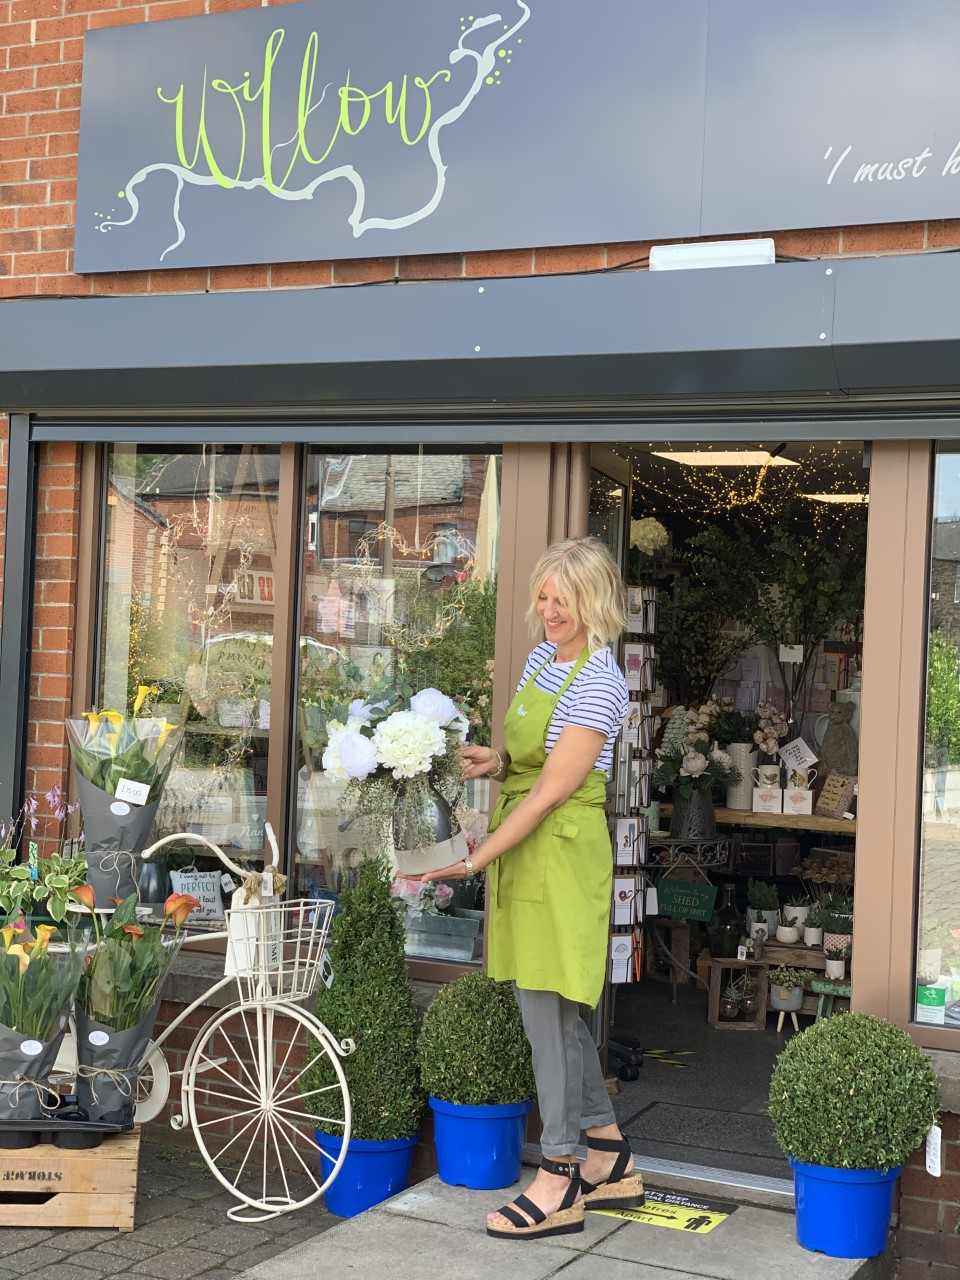 In this image, Diane is holding a white bouquet whilst stood outside of her florist. The store has a green and grey sign and a decorative bike leaning against the window.